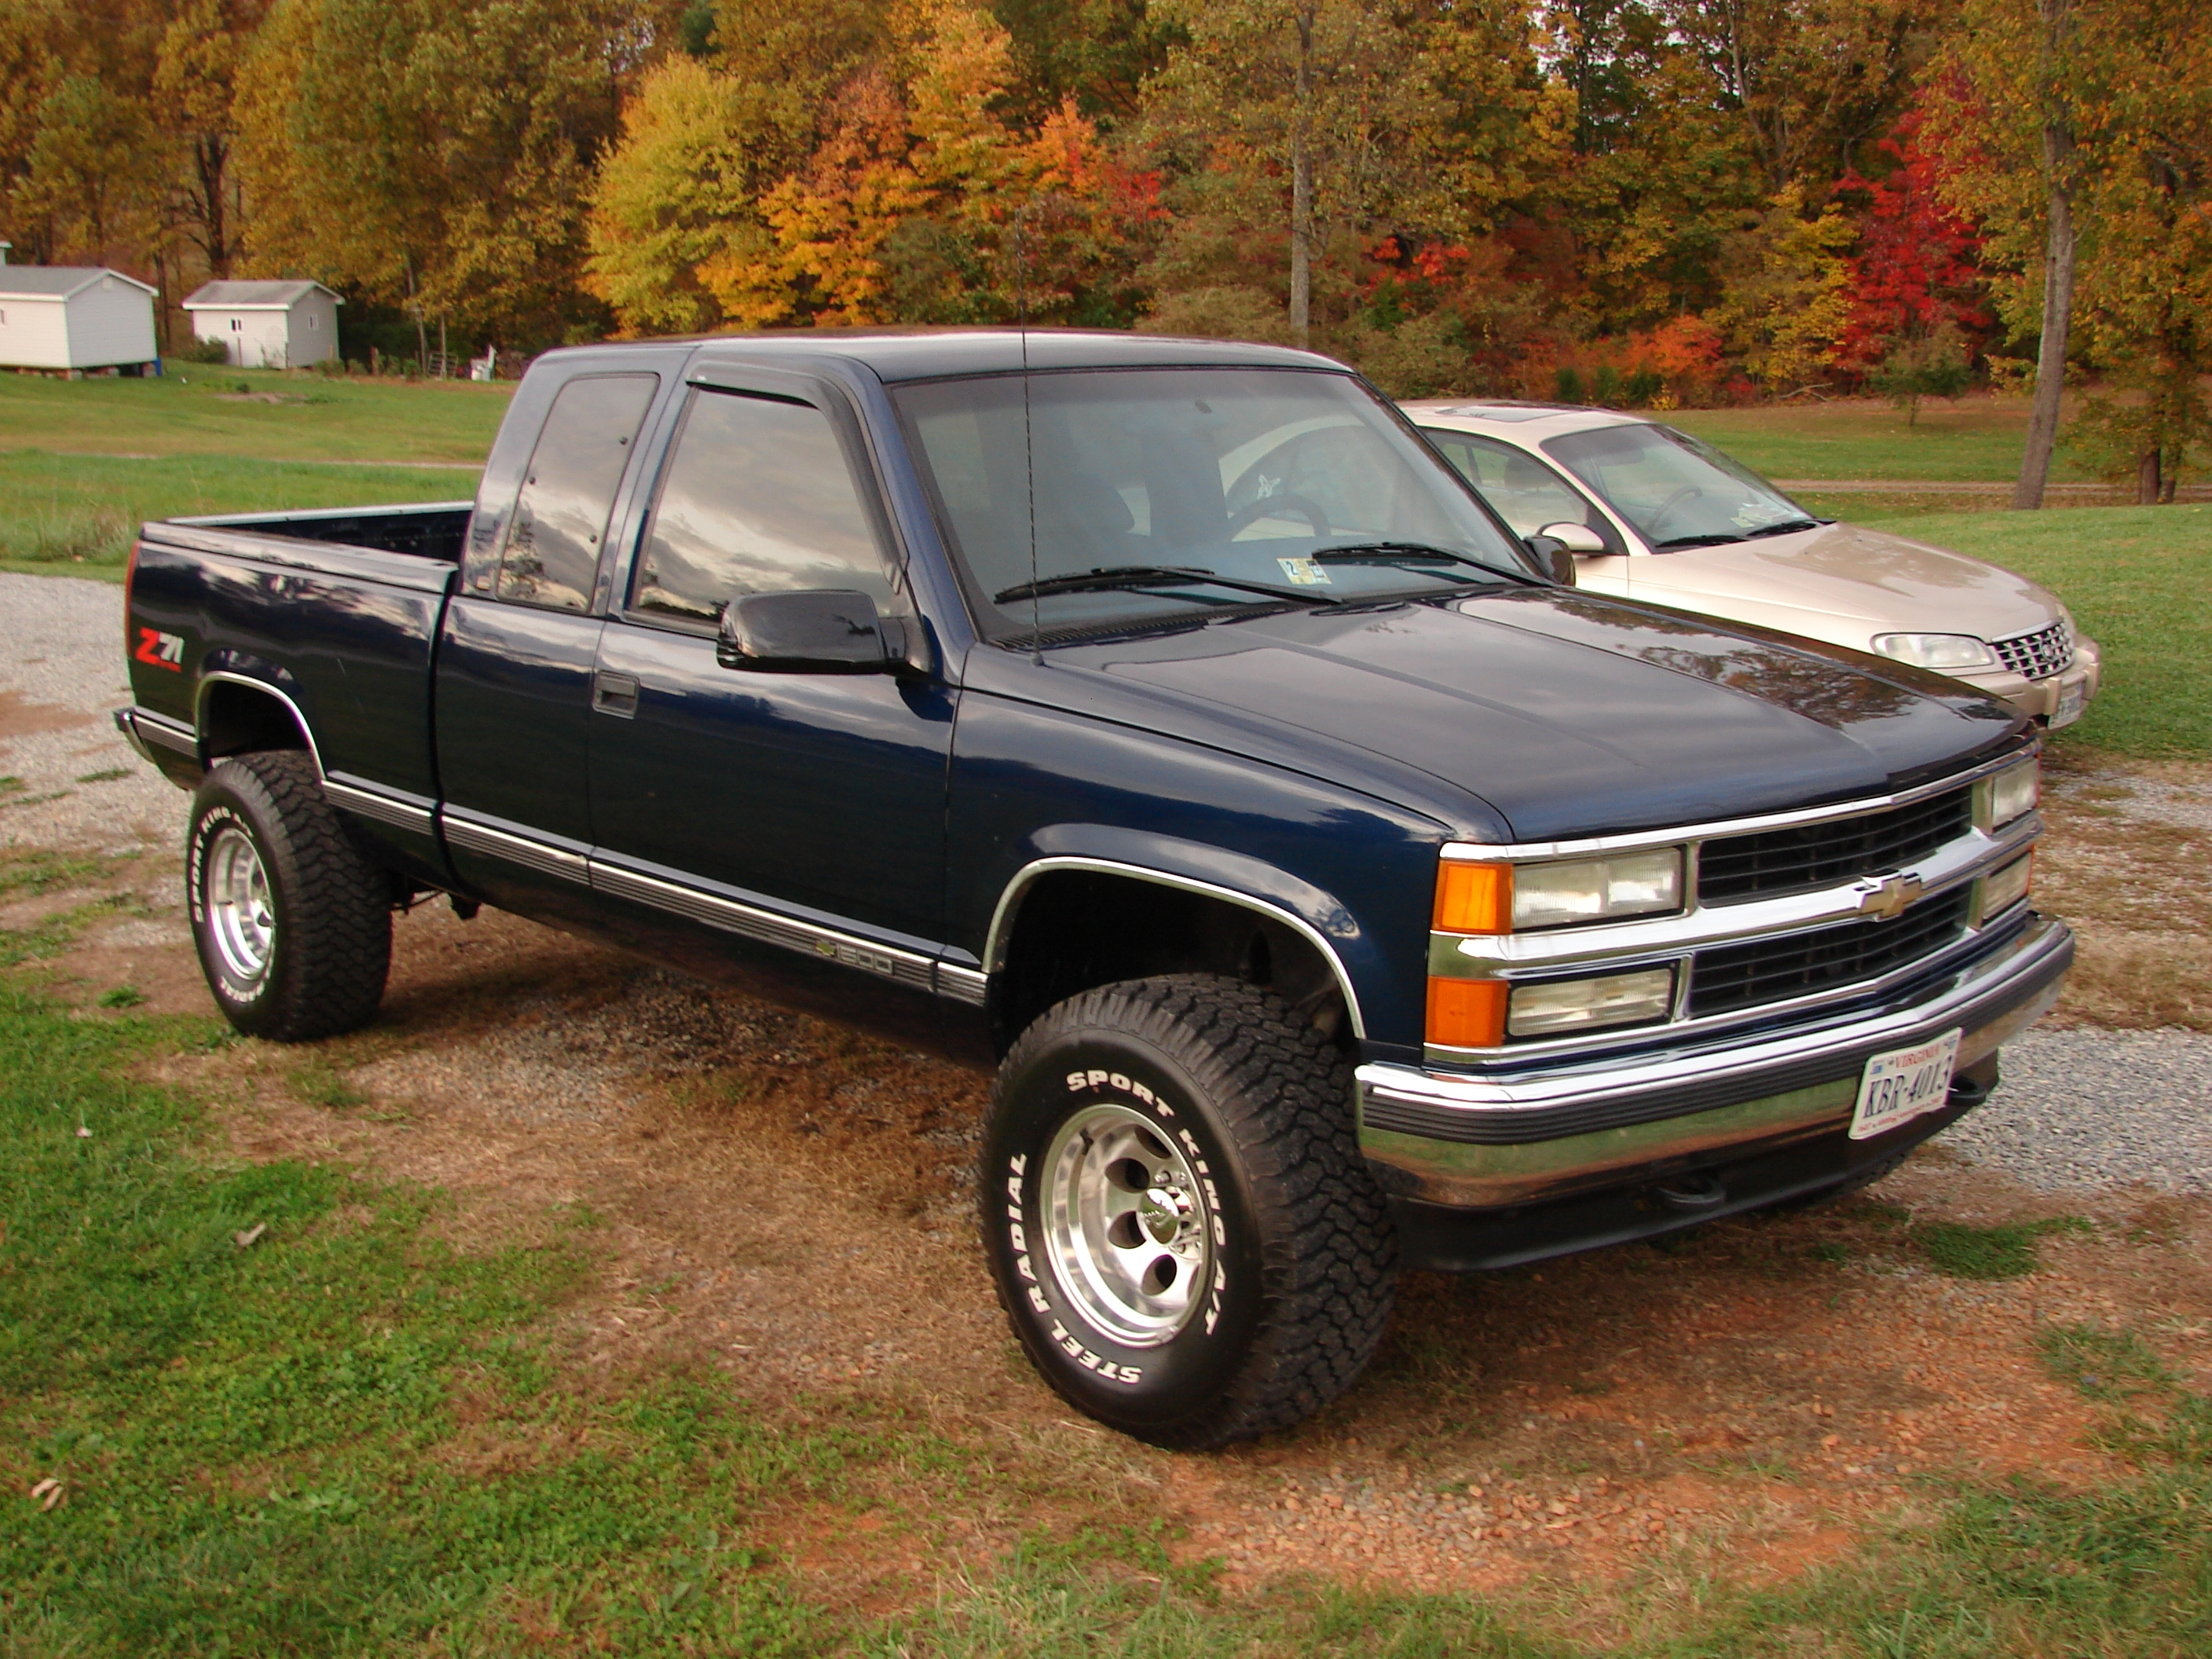 tfrithstang 1996 chevrolet silverado 1500 extended cab. Black Bedroom Furniture Sets. Home Design Ideas